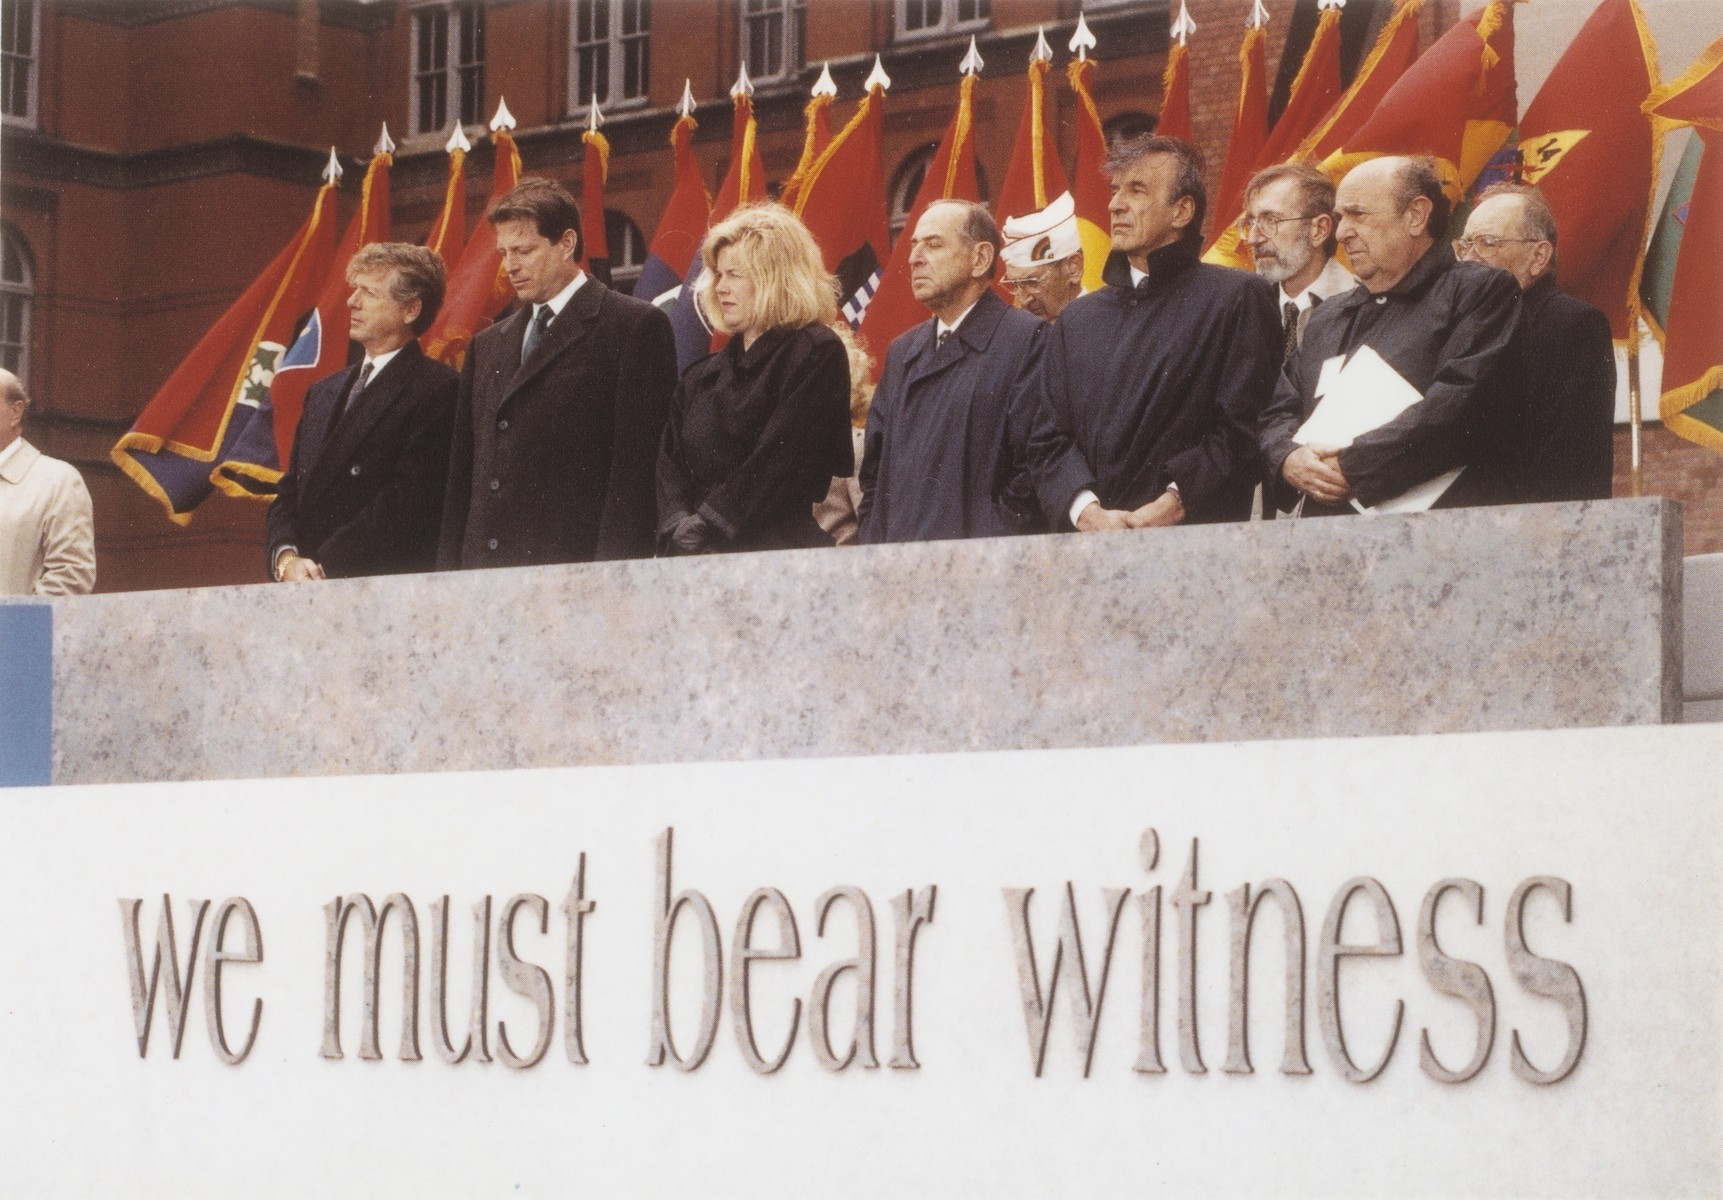 At the dedication ceremony of the opeing of the Museum, participants listen to Bishop Krister Stendahl's invocation as liberation unit flags snap in the wind.   Pictured from left to right are: Ted Koppel, Albert Gore, Tipper Gore, Harvey Meyerhoff, Elie Wiesel, James Ingo Freed, unidentified and Jeshajahu Weinberg.